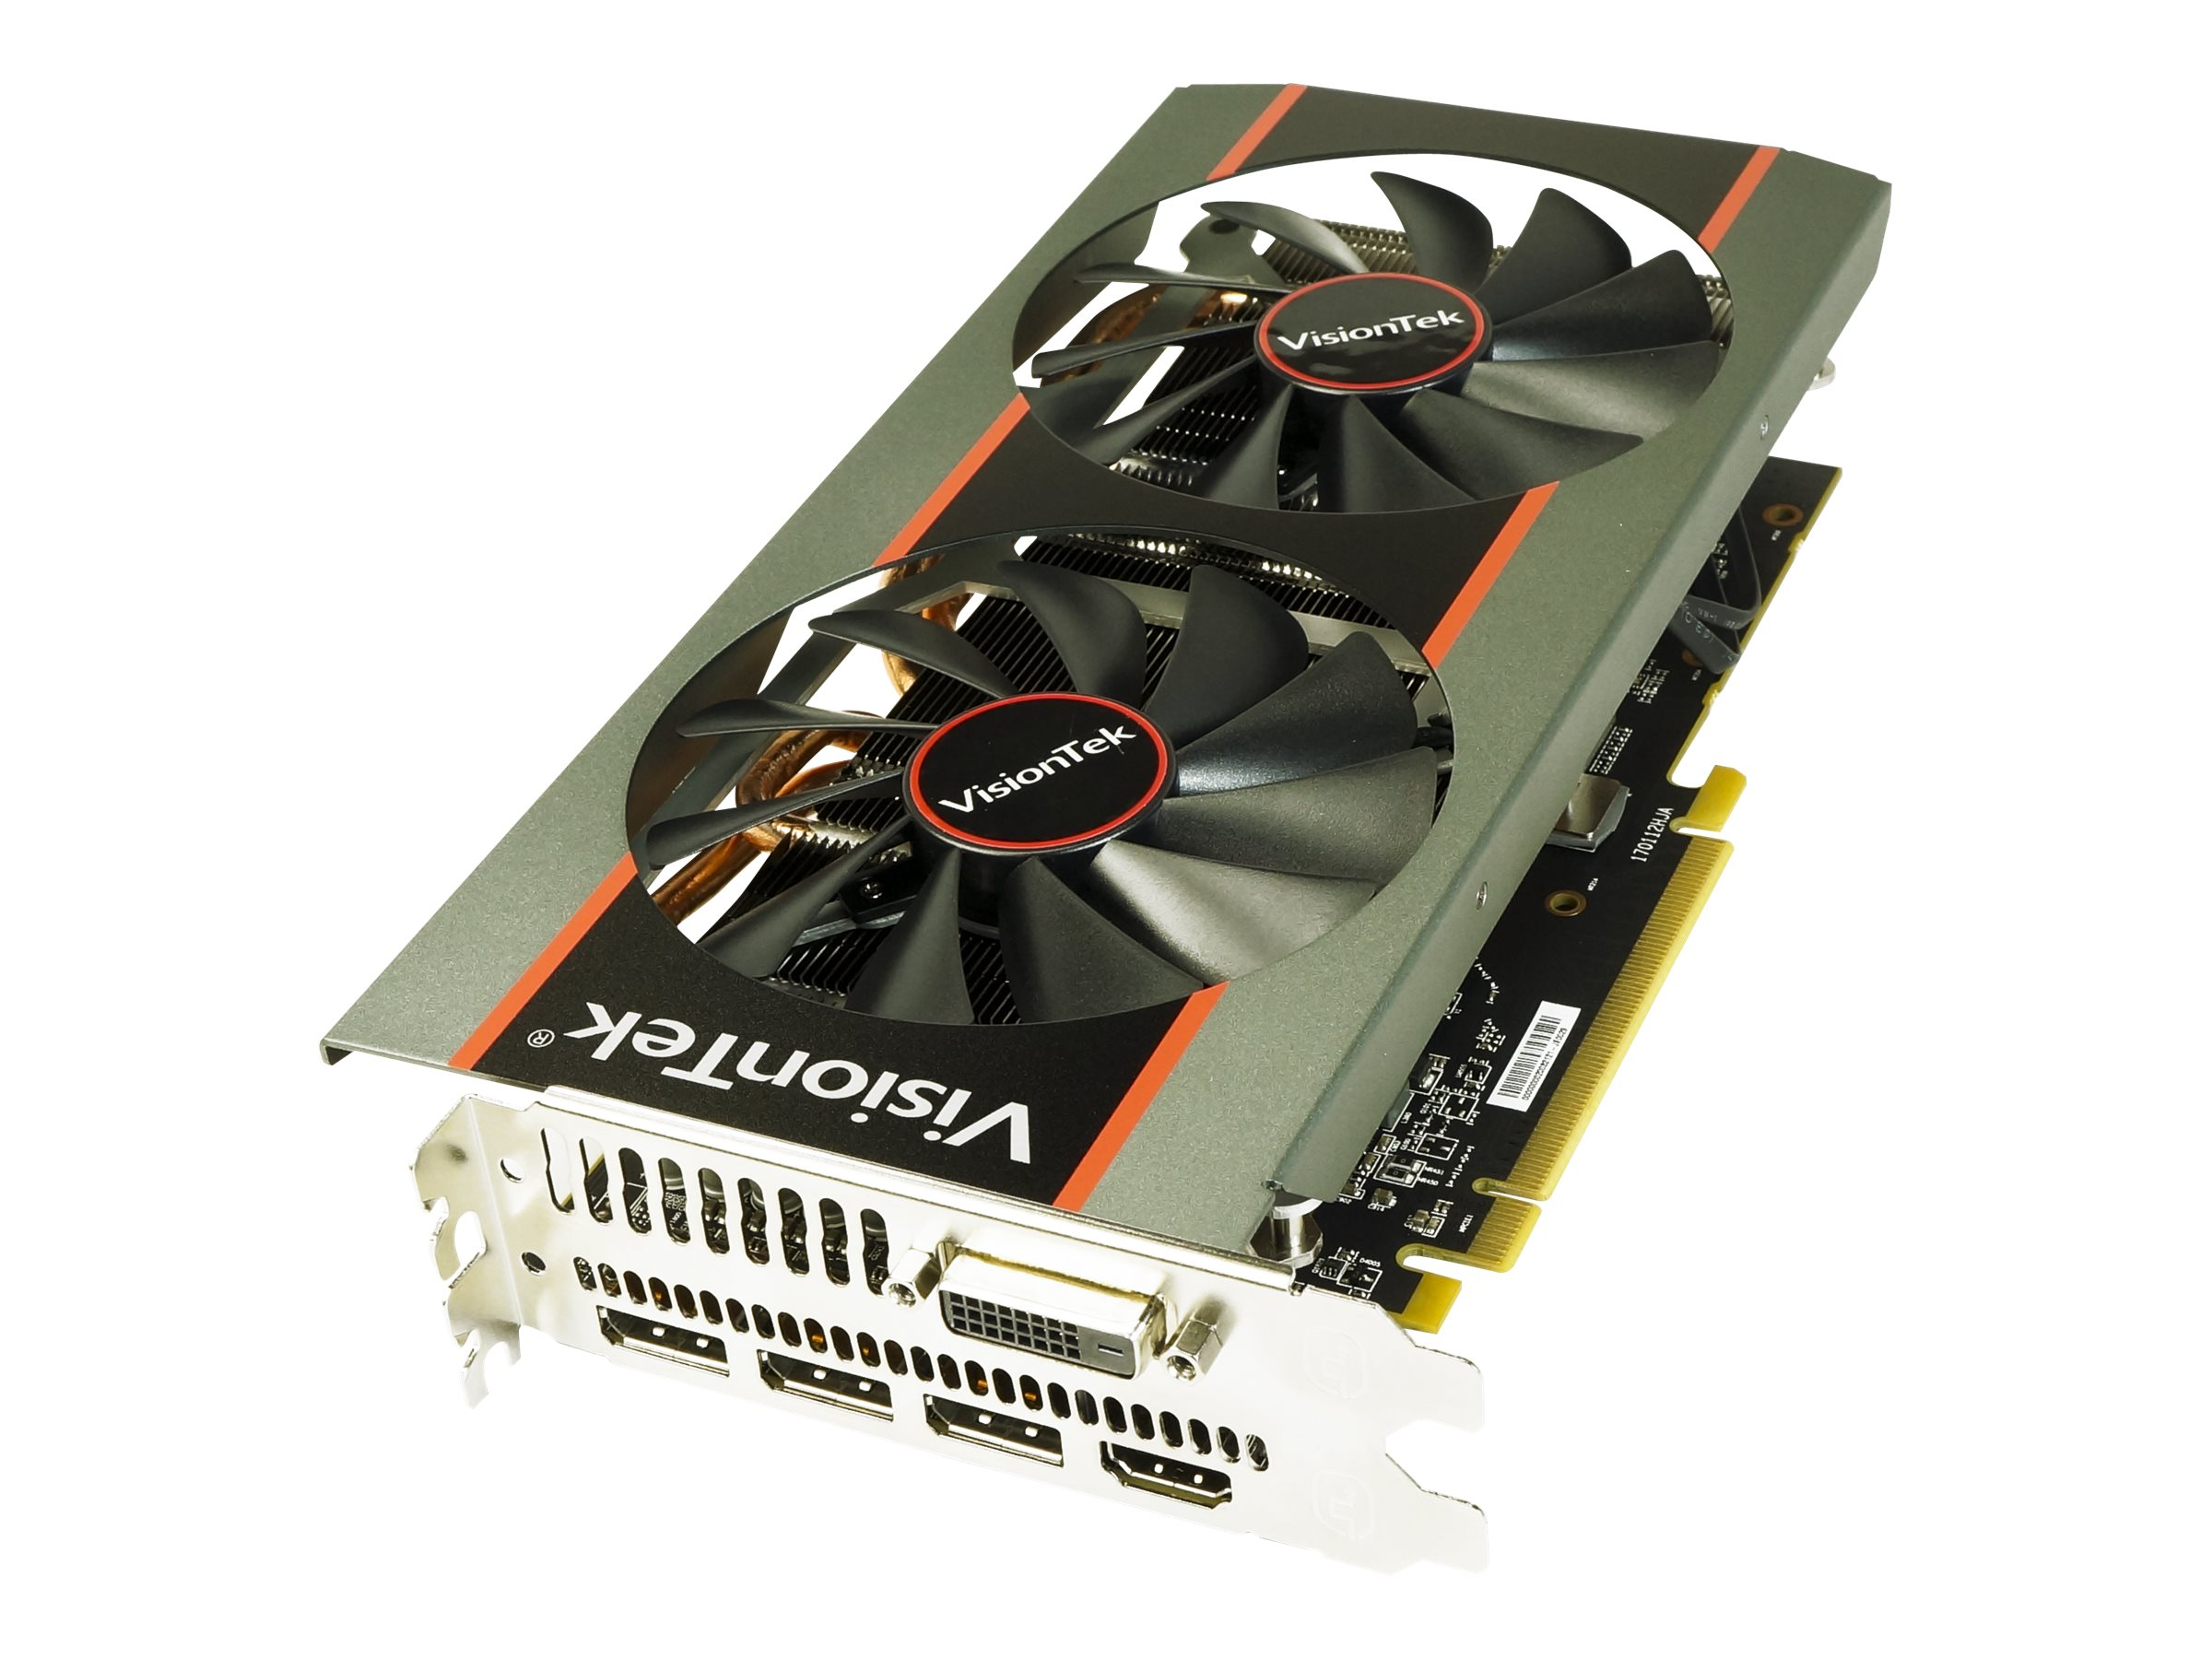 VisionTek Radeon RX 580 PCIe x16 Overclocked Graphics Card, 8GB GDDR5